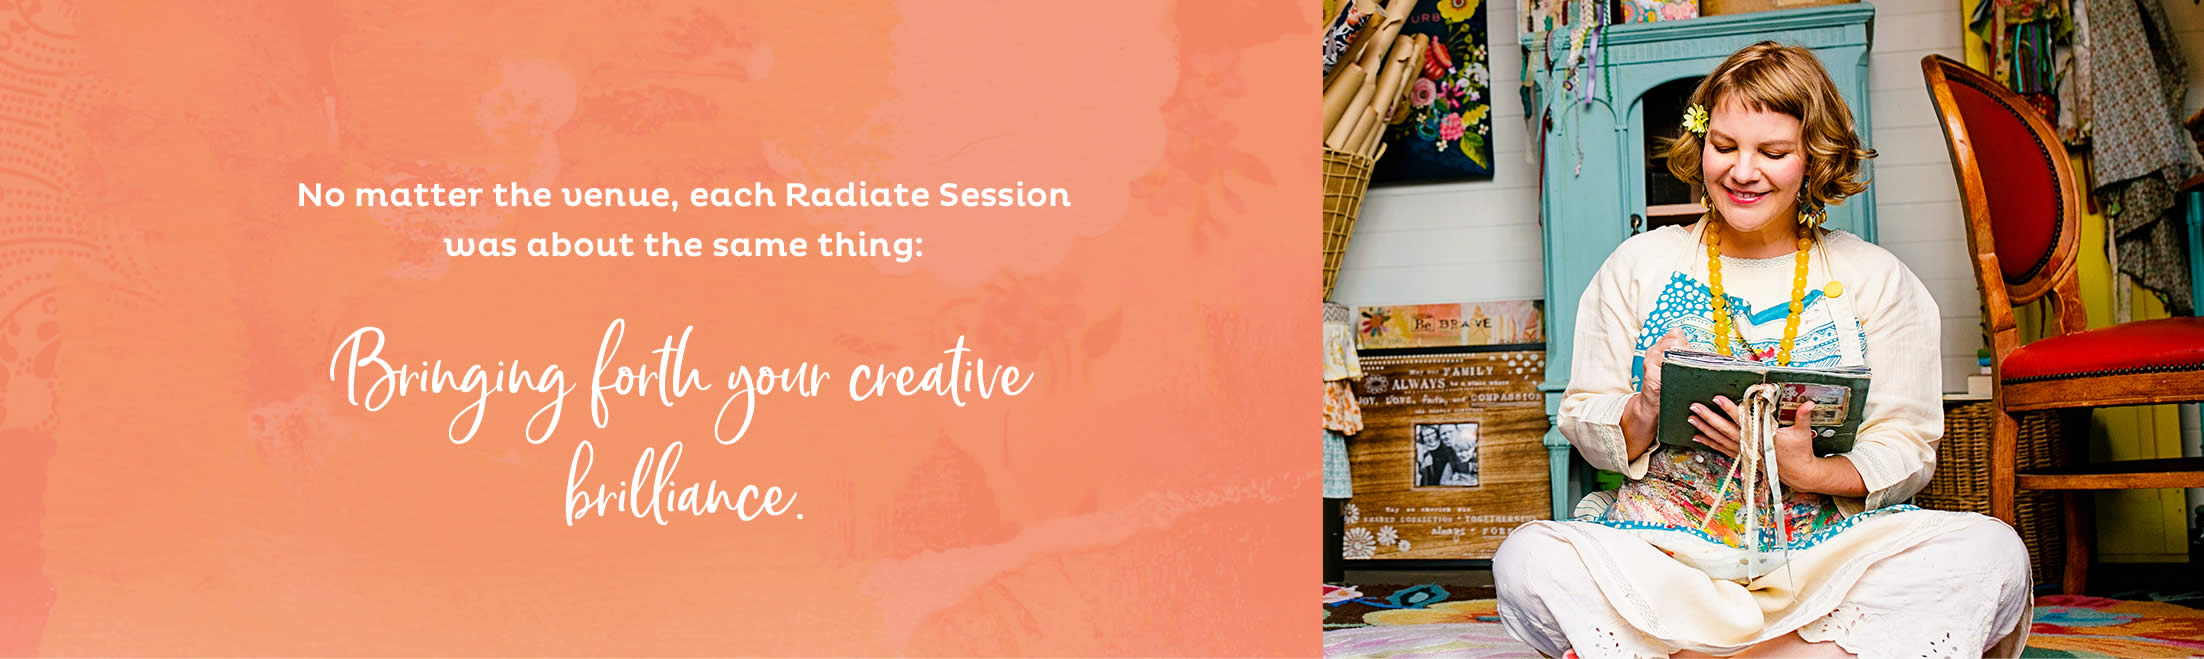 No matter the venue, each Radiate Session was about the same thing: Bringing forth your creative brilliance